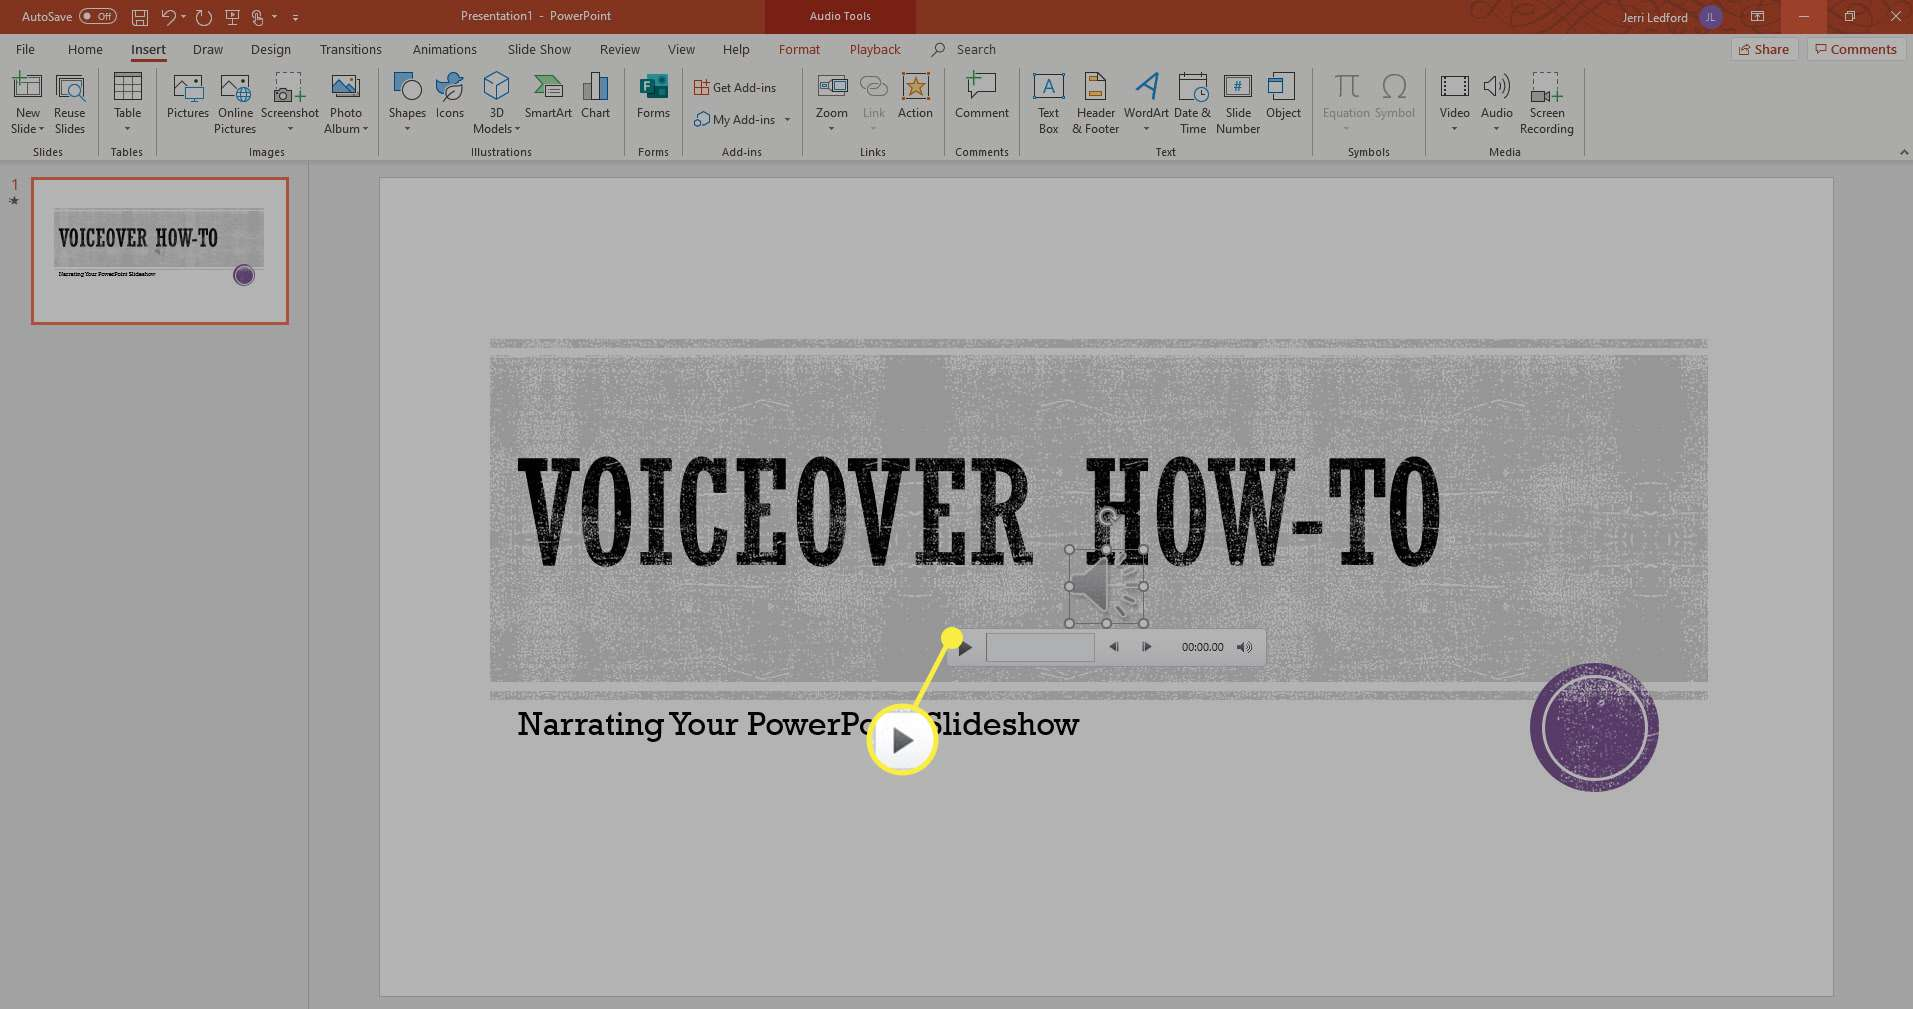 The Play option to preview PowerPoint narration.